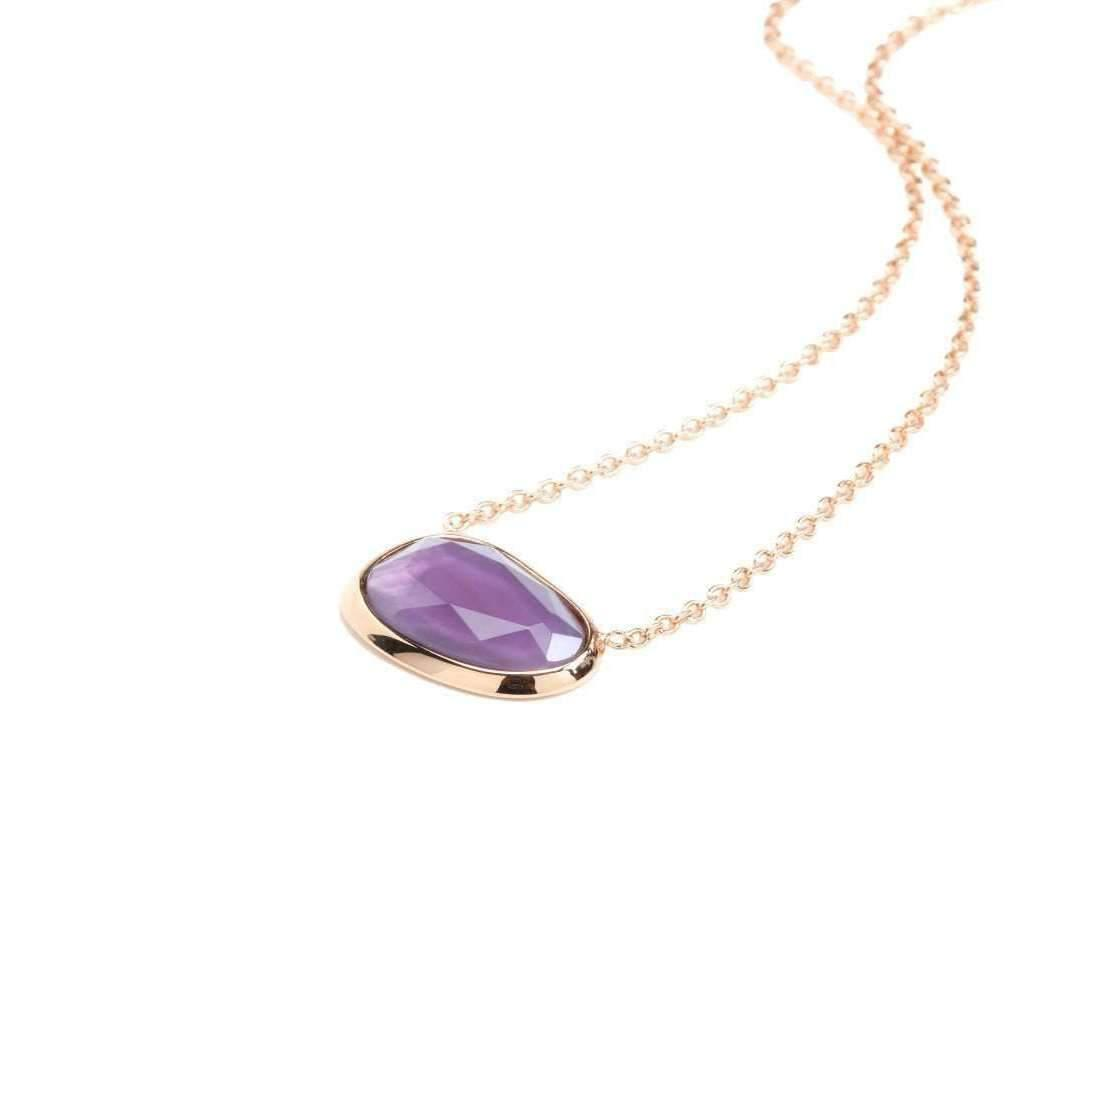 Rina Limor Sunrise Purple Crystal with Zircon Pendant Necklace BsU2HnvL